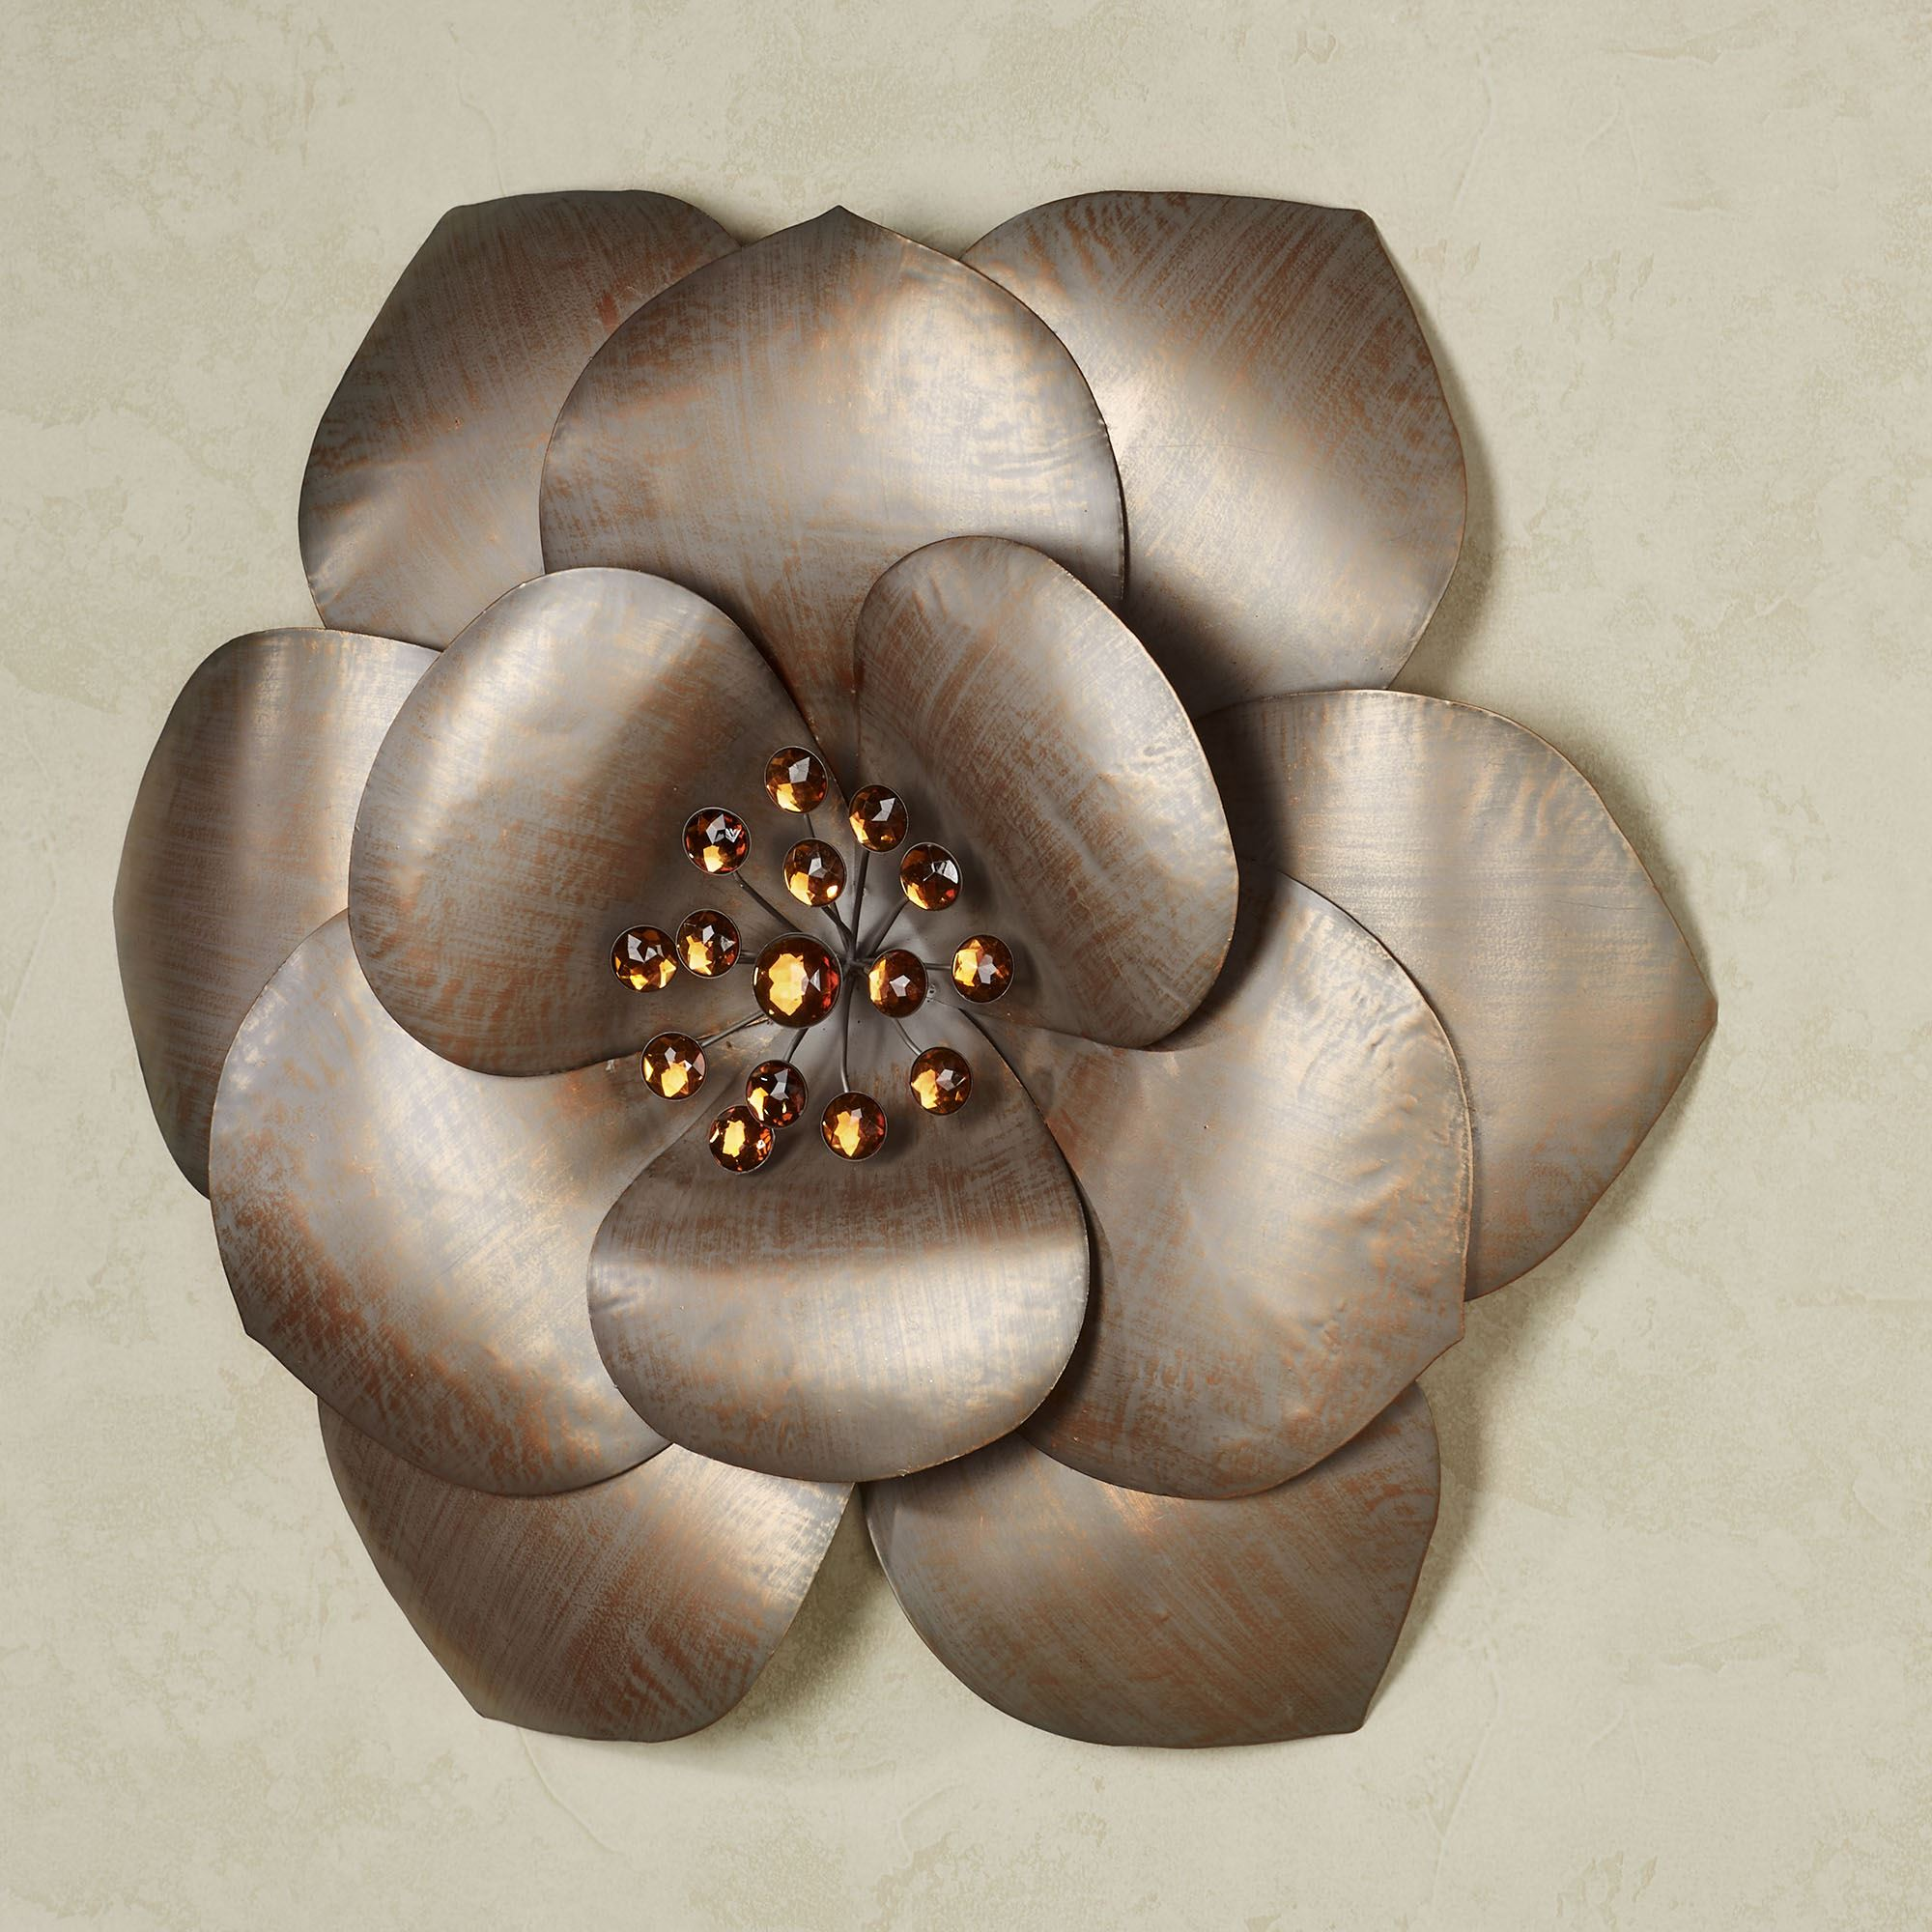 Incroyable Fiore Gem Flower Blossom Metal Wall Art. Fiore Wall Art Multi Metallic.  Click To Expand